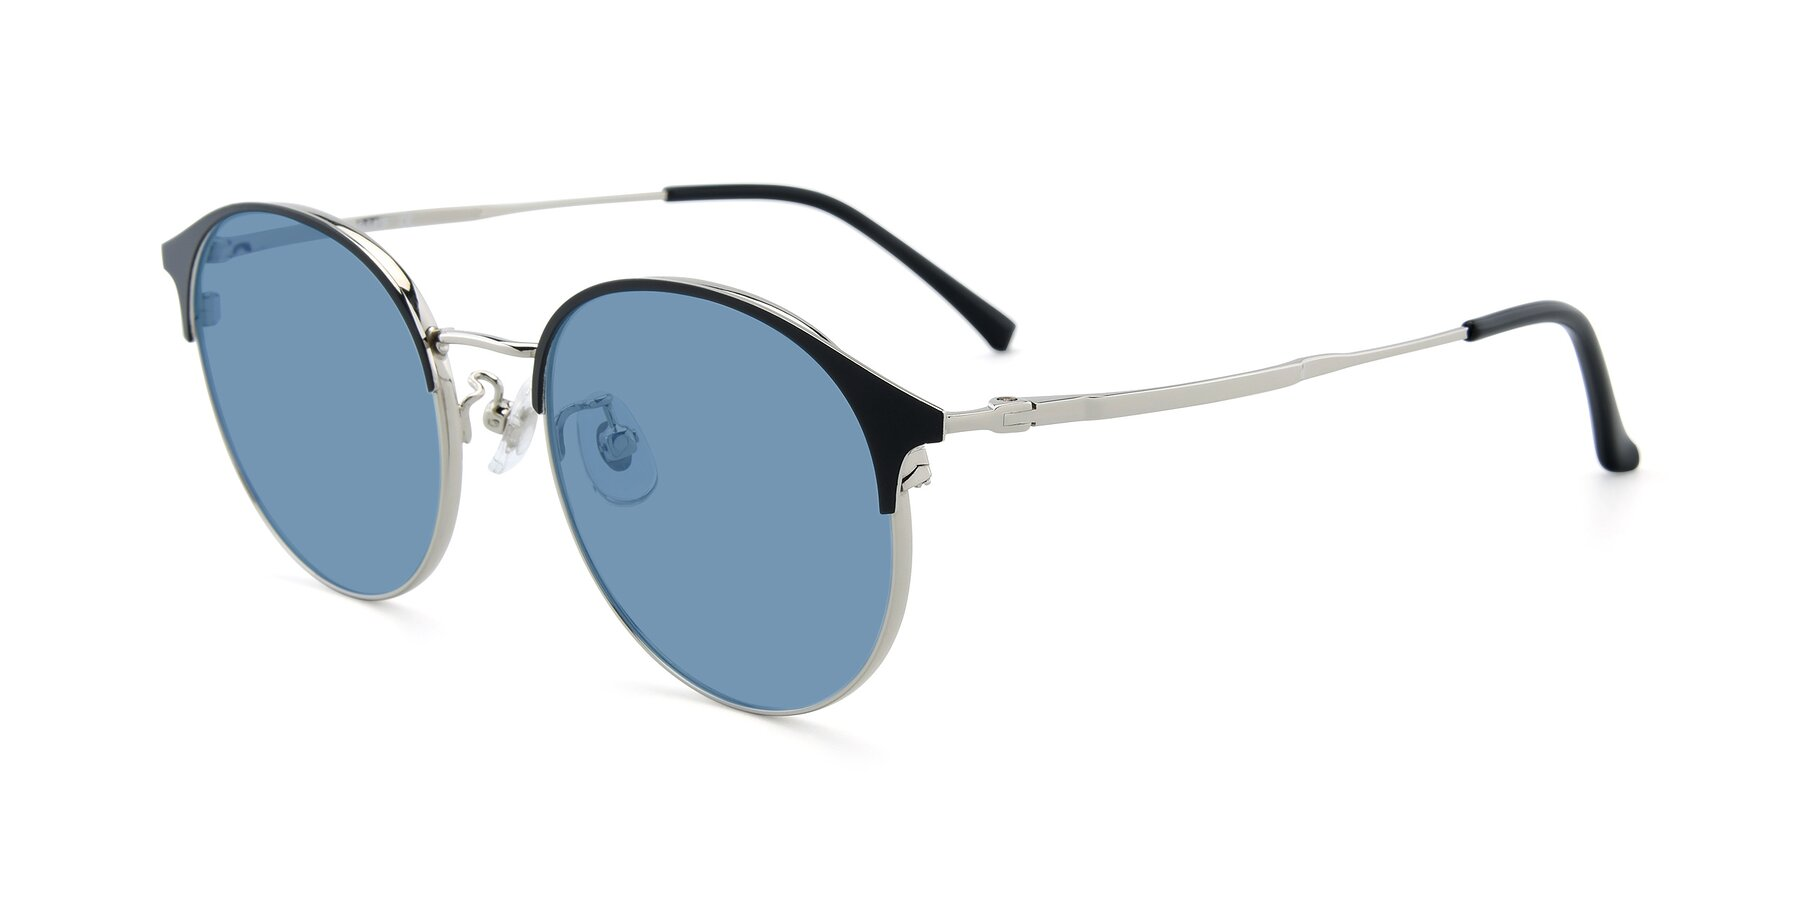 Angle of XC-8031 in Black-Silver with Medium Blue Tinted Lenses